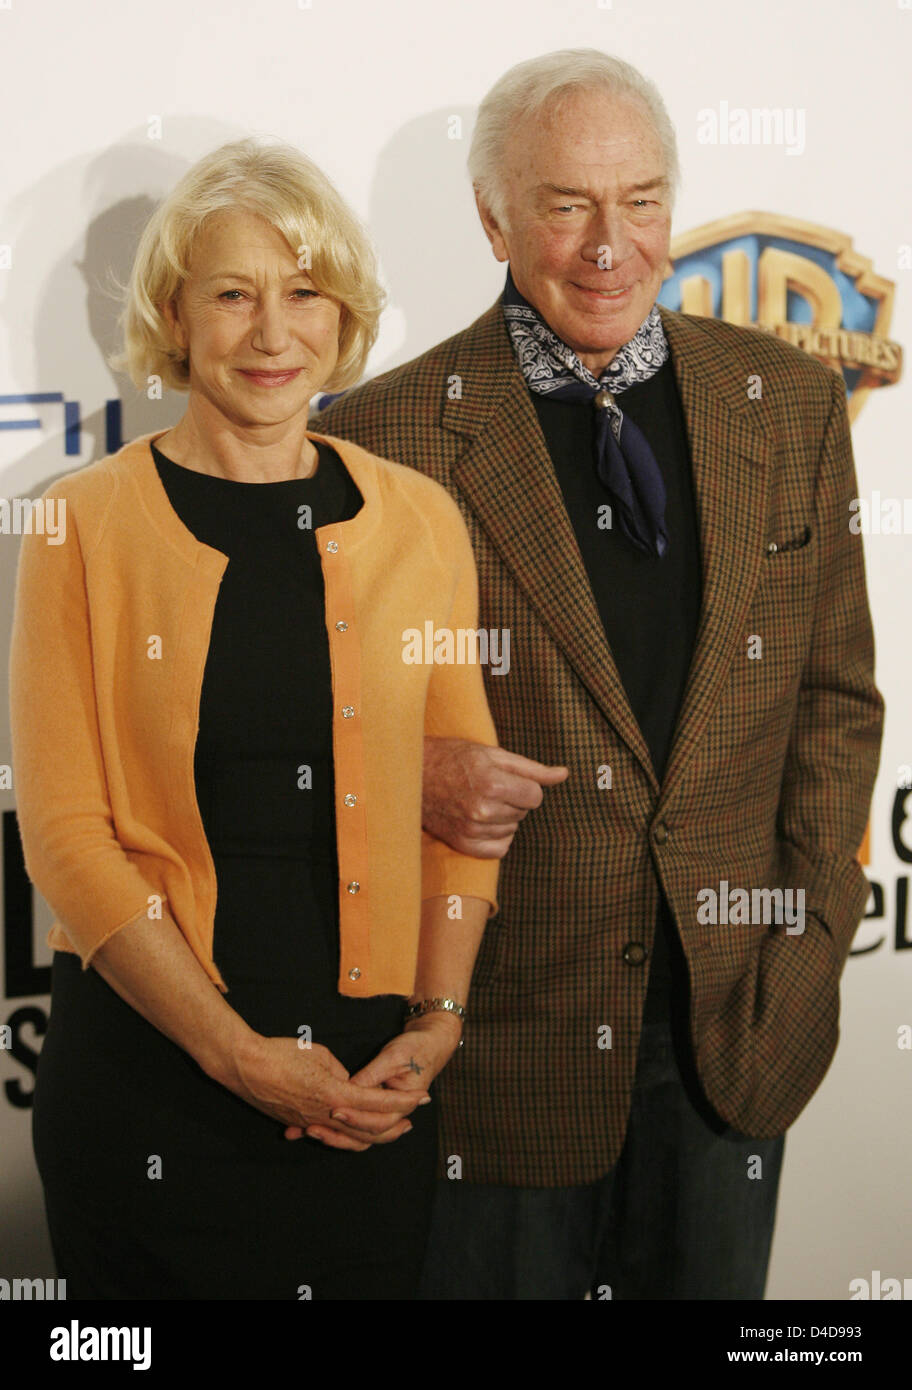 British actress Hellen Mirren (L) and Canadian actor Christopher Plummer (R) pose during a photo call on their film - Stock Image